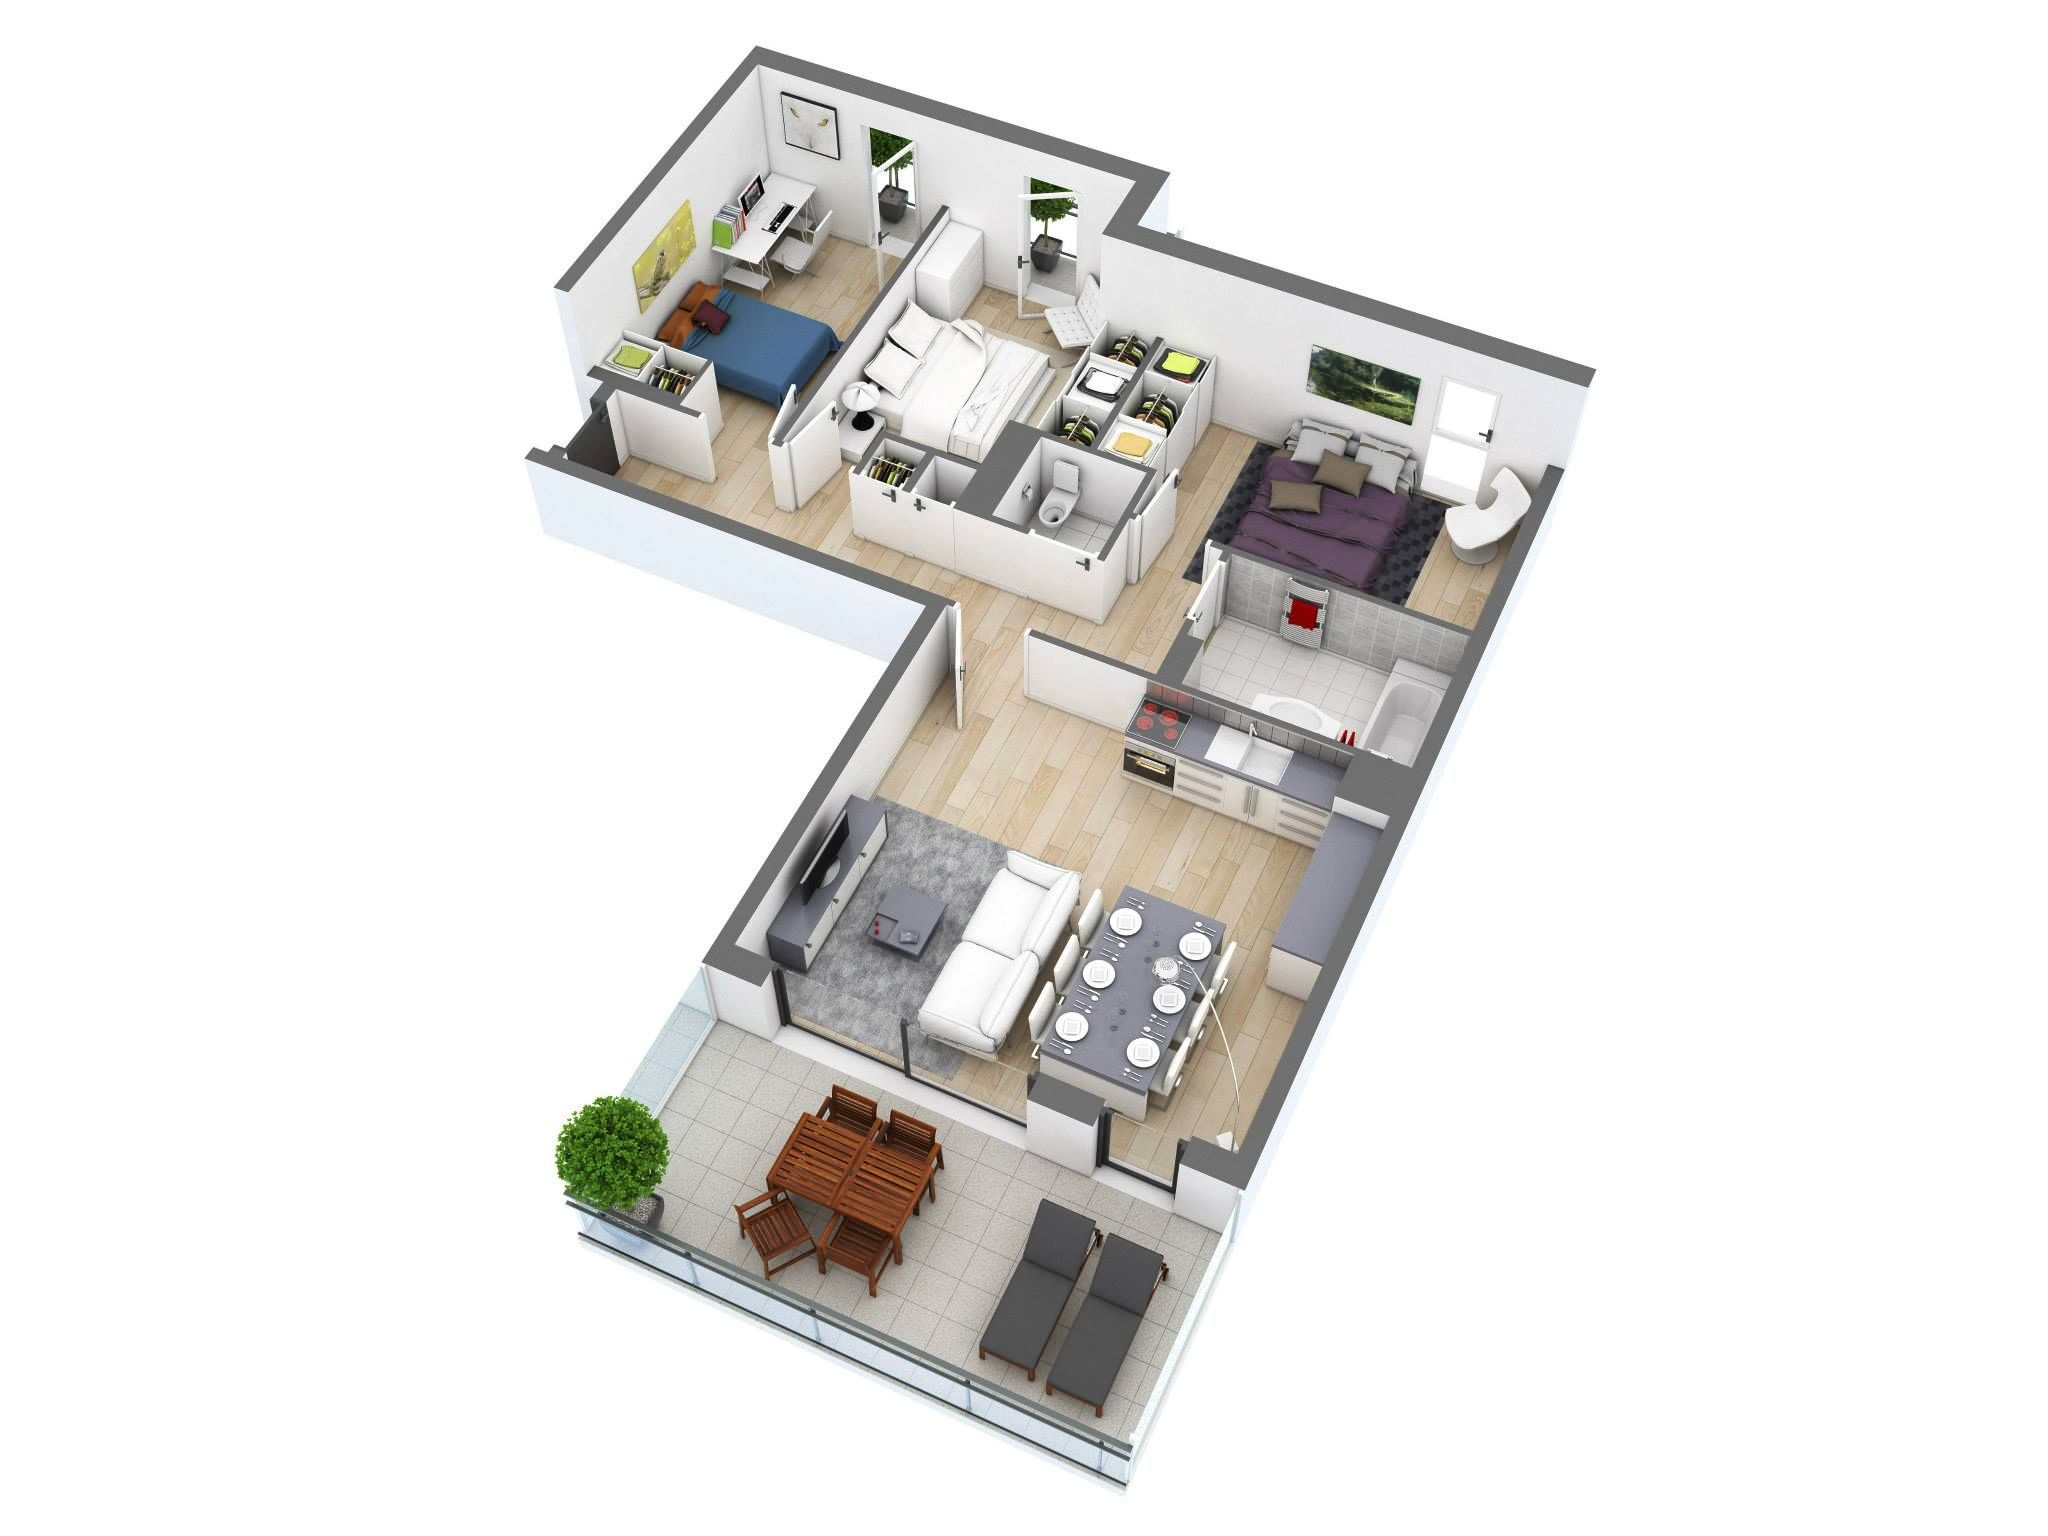 3 bedroom floor plans. Understanding 3D Floor Plans And Finding The Right Layout For You